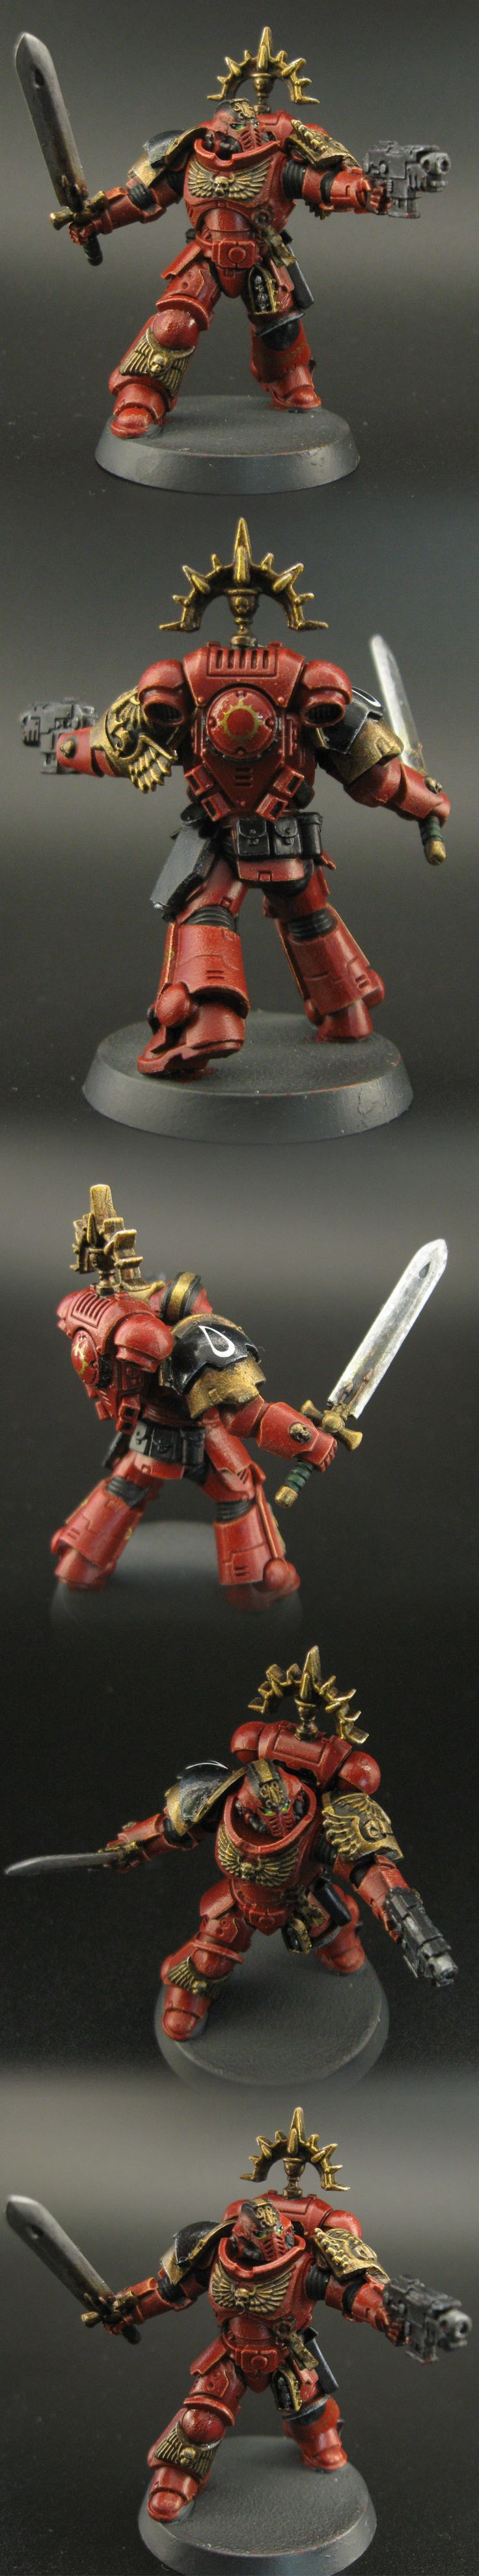 Blood Angels Army Project (pic carpet bombing) - Page 65